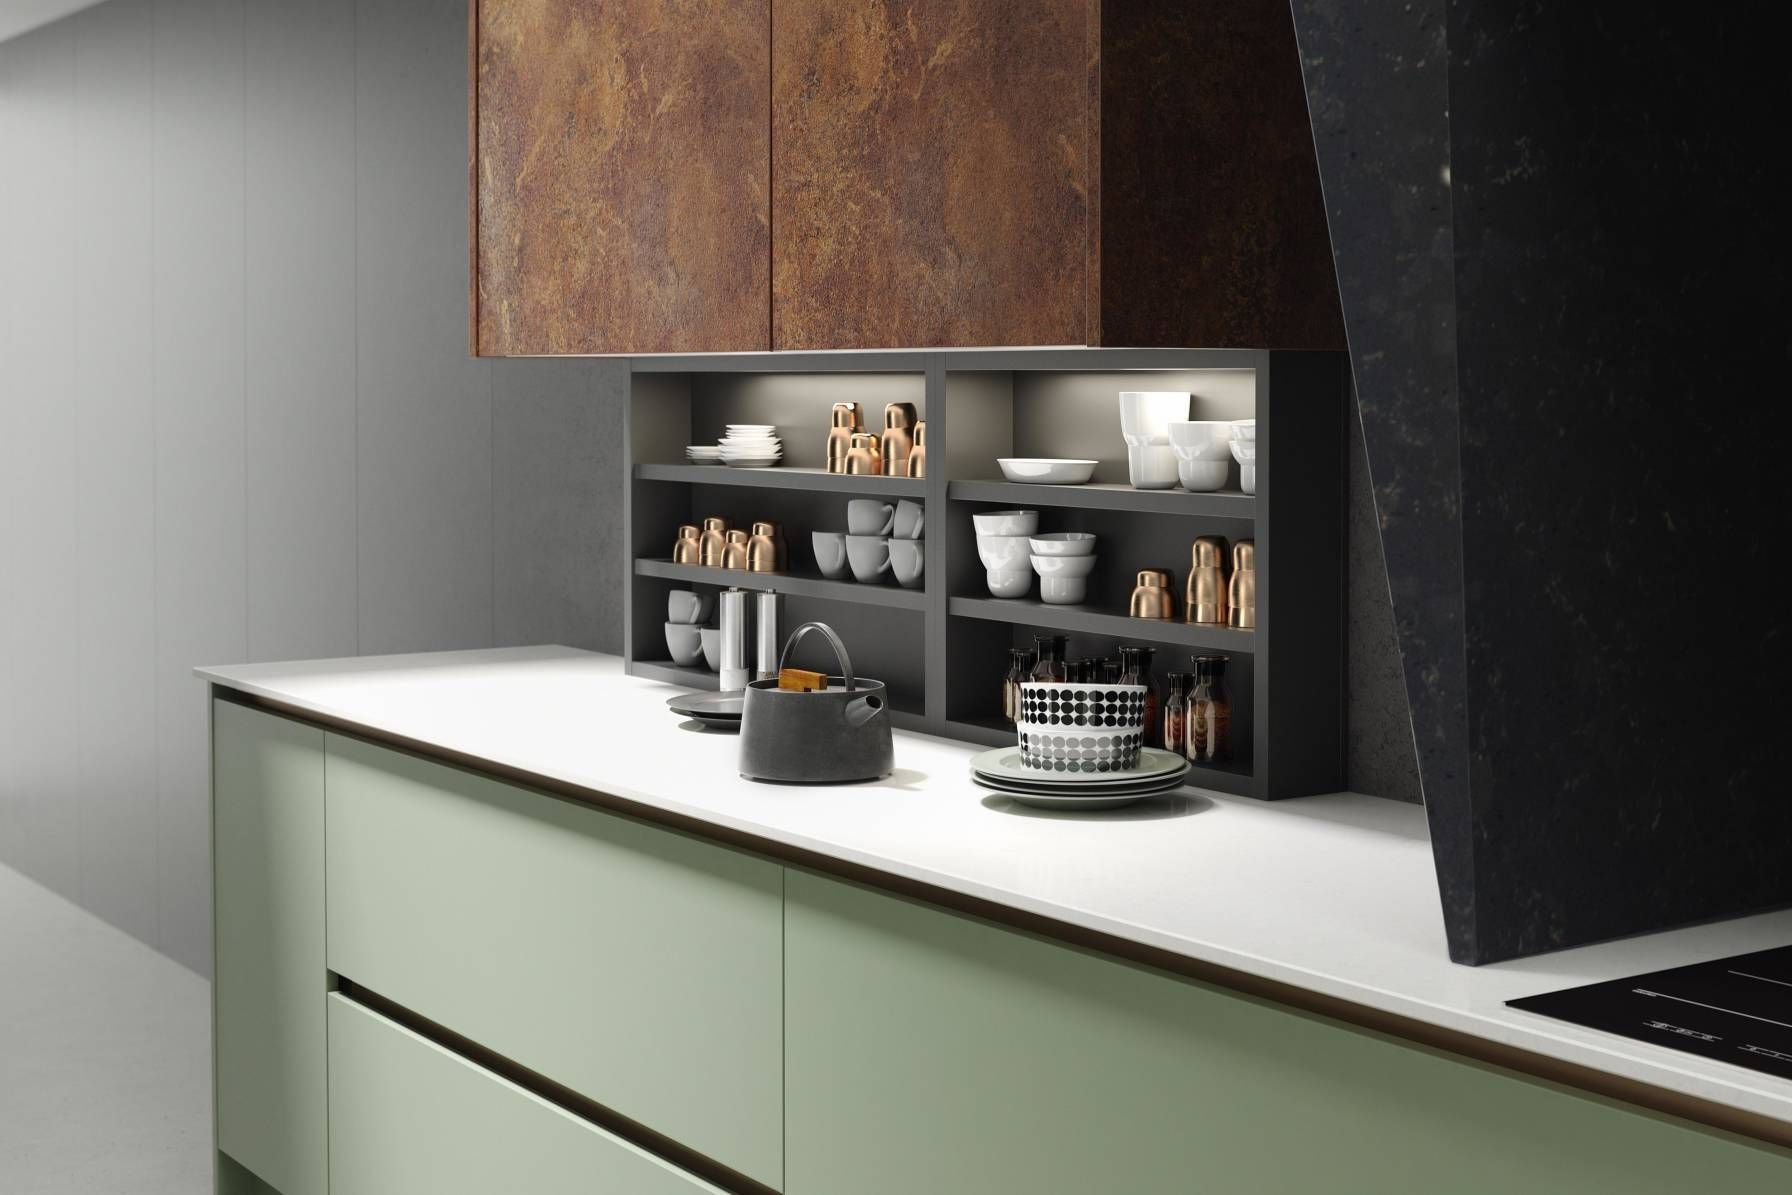 View Our Milano Elements Kitchen In Copper Slate And Roman Leaf. Explore  The Full Infinity Plus Milano Collection To Find Your Dream Design.